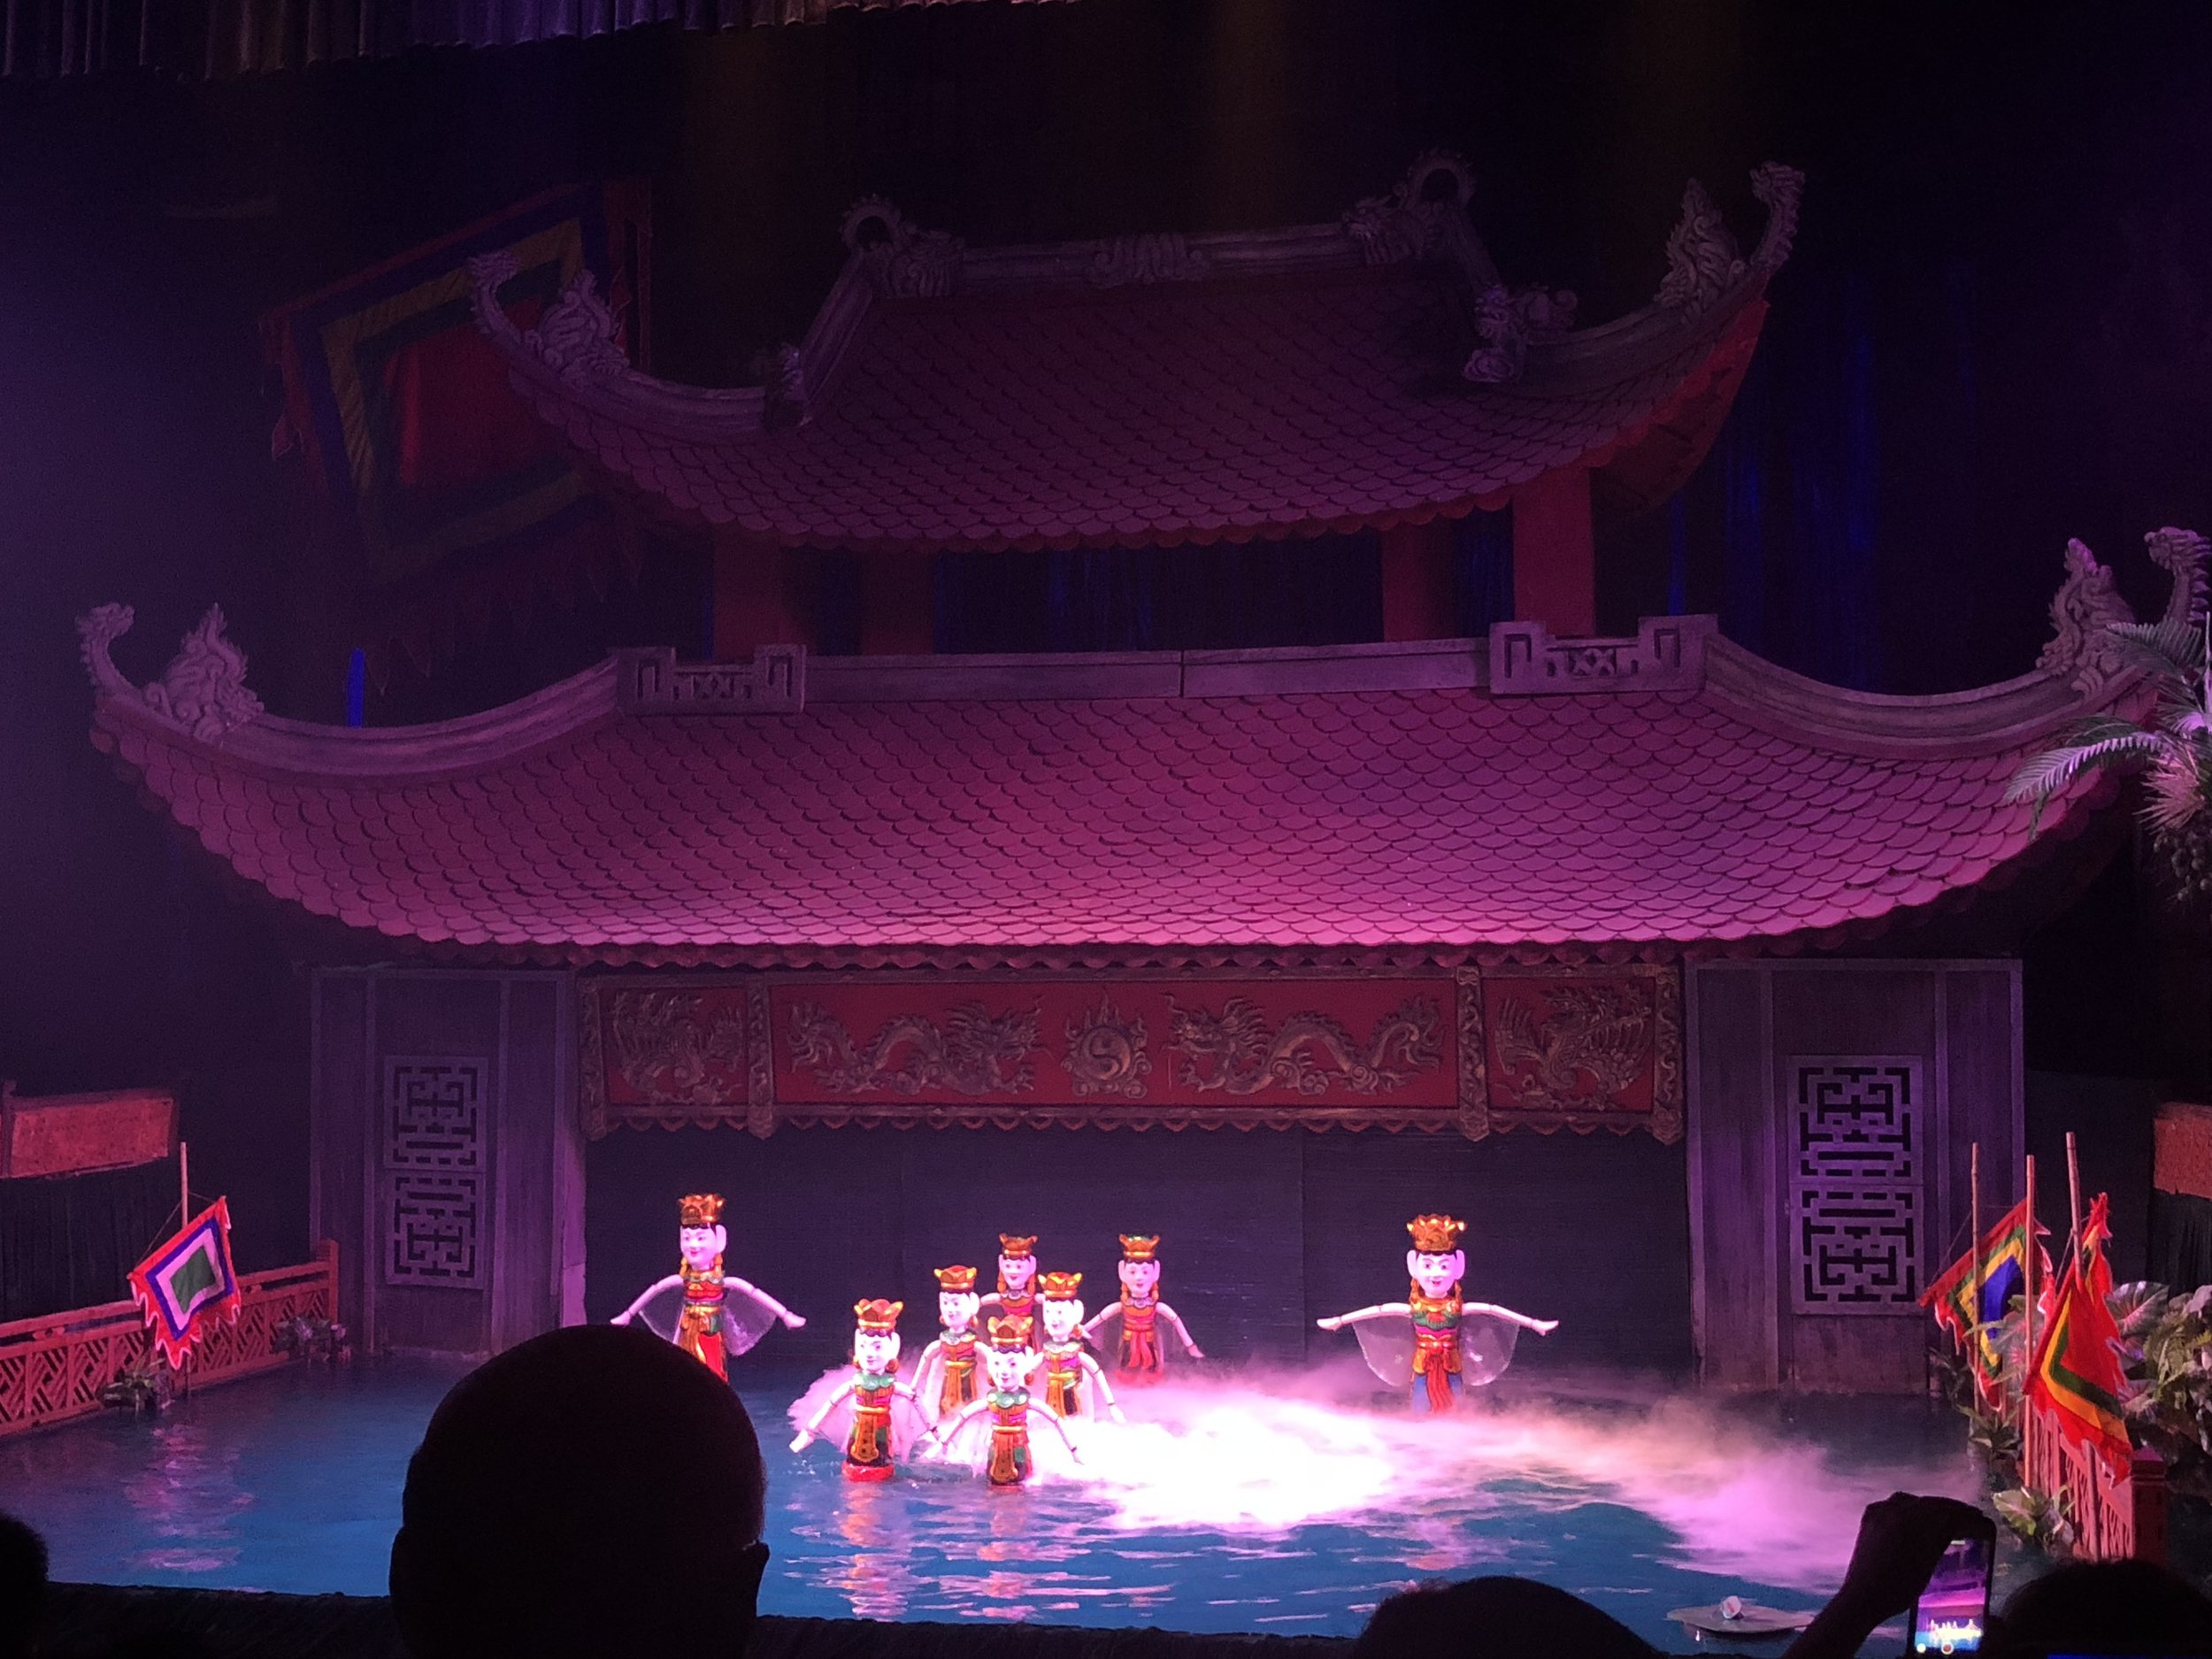 A scene from the Thang Long Water Puppet Theatre. There is a small orchestra and two singers who describe a story of the Vietnamese countryside and the puppet masters are behind the temple gate.